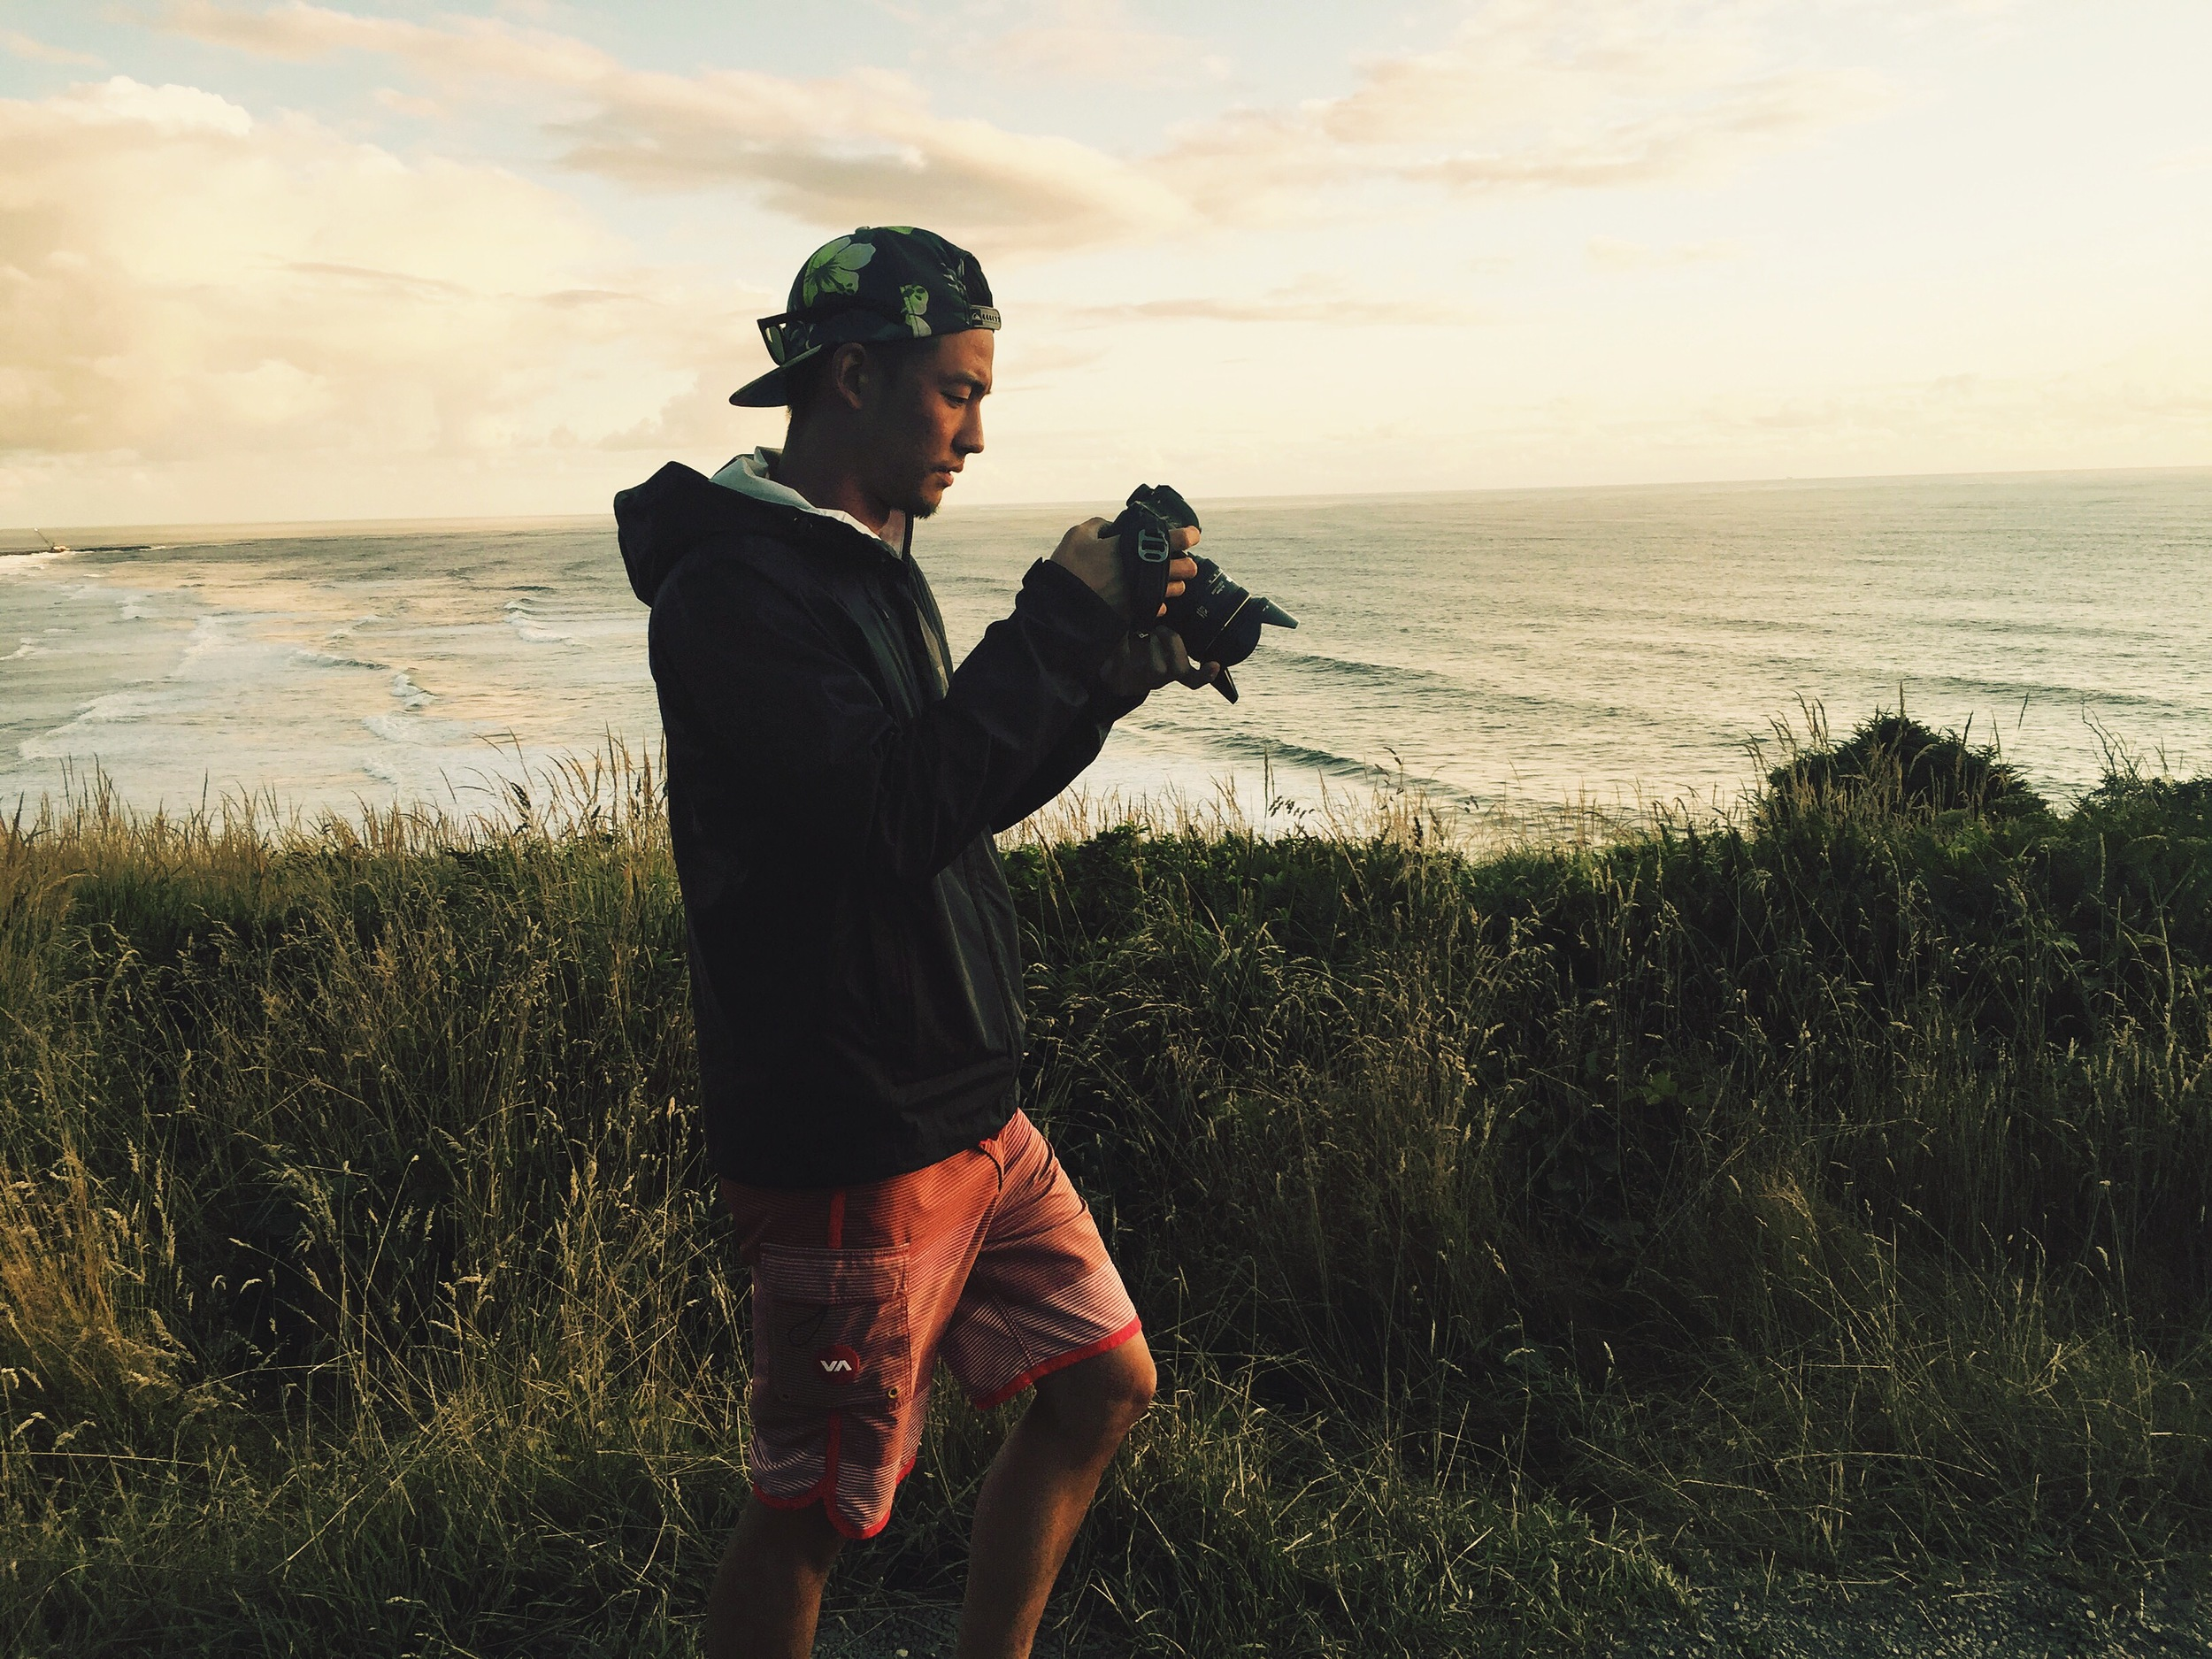 Looking at a shot during a camping trip along the Washington coast, USA.   Photo by Chandler Audette